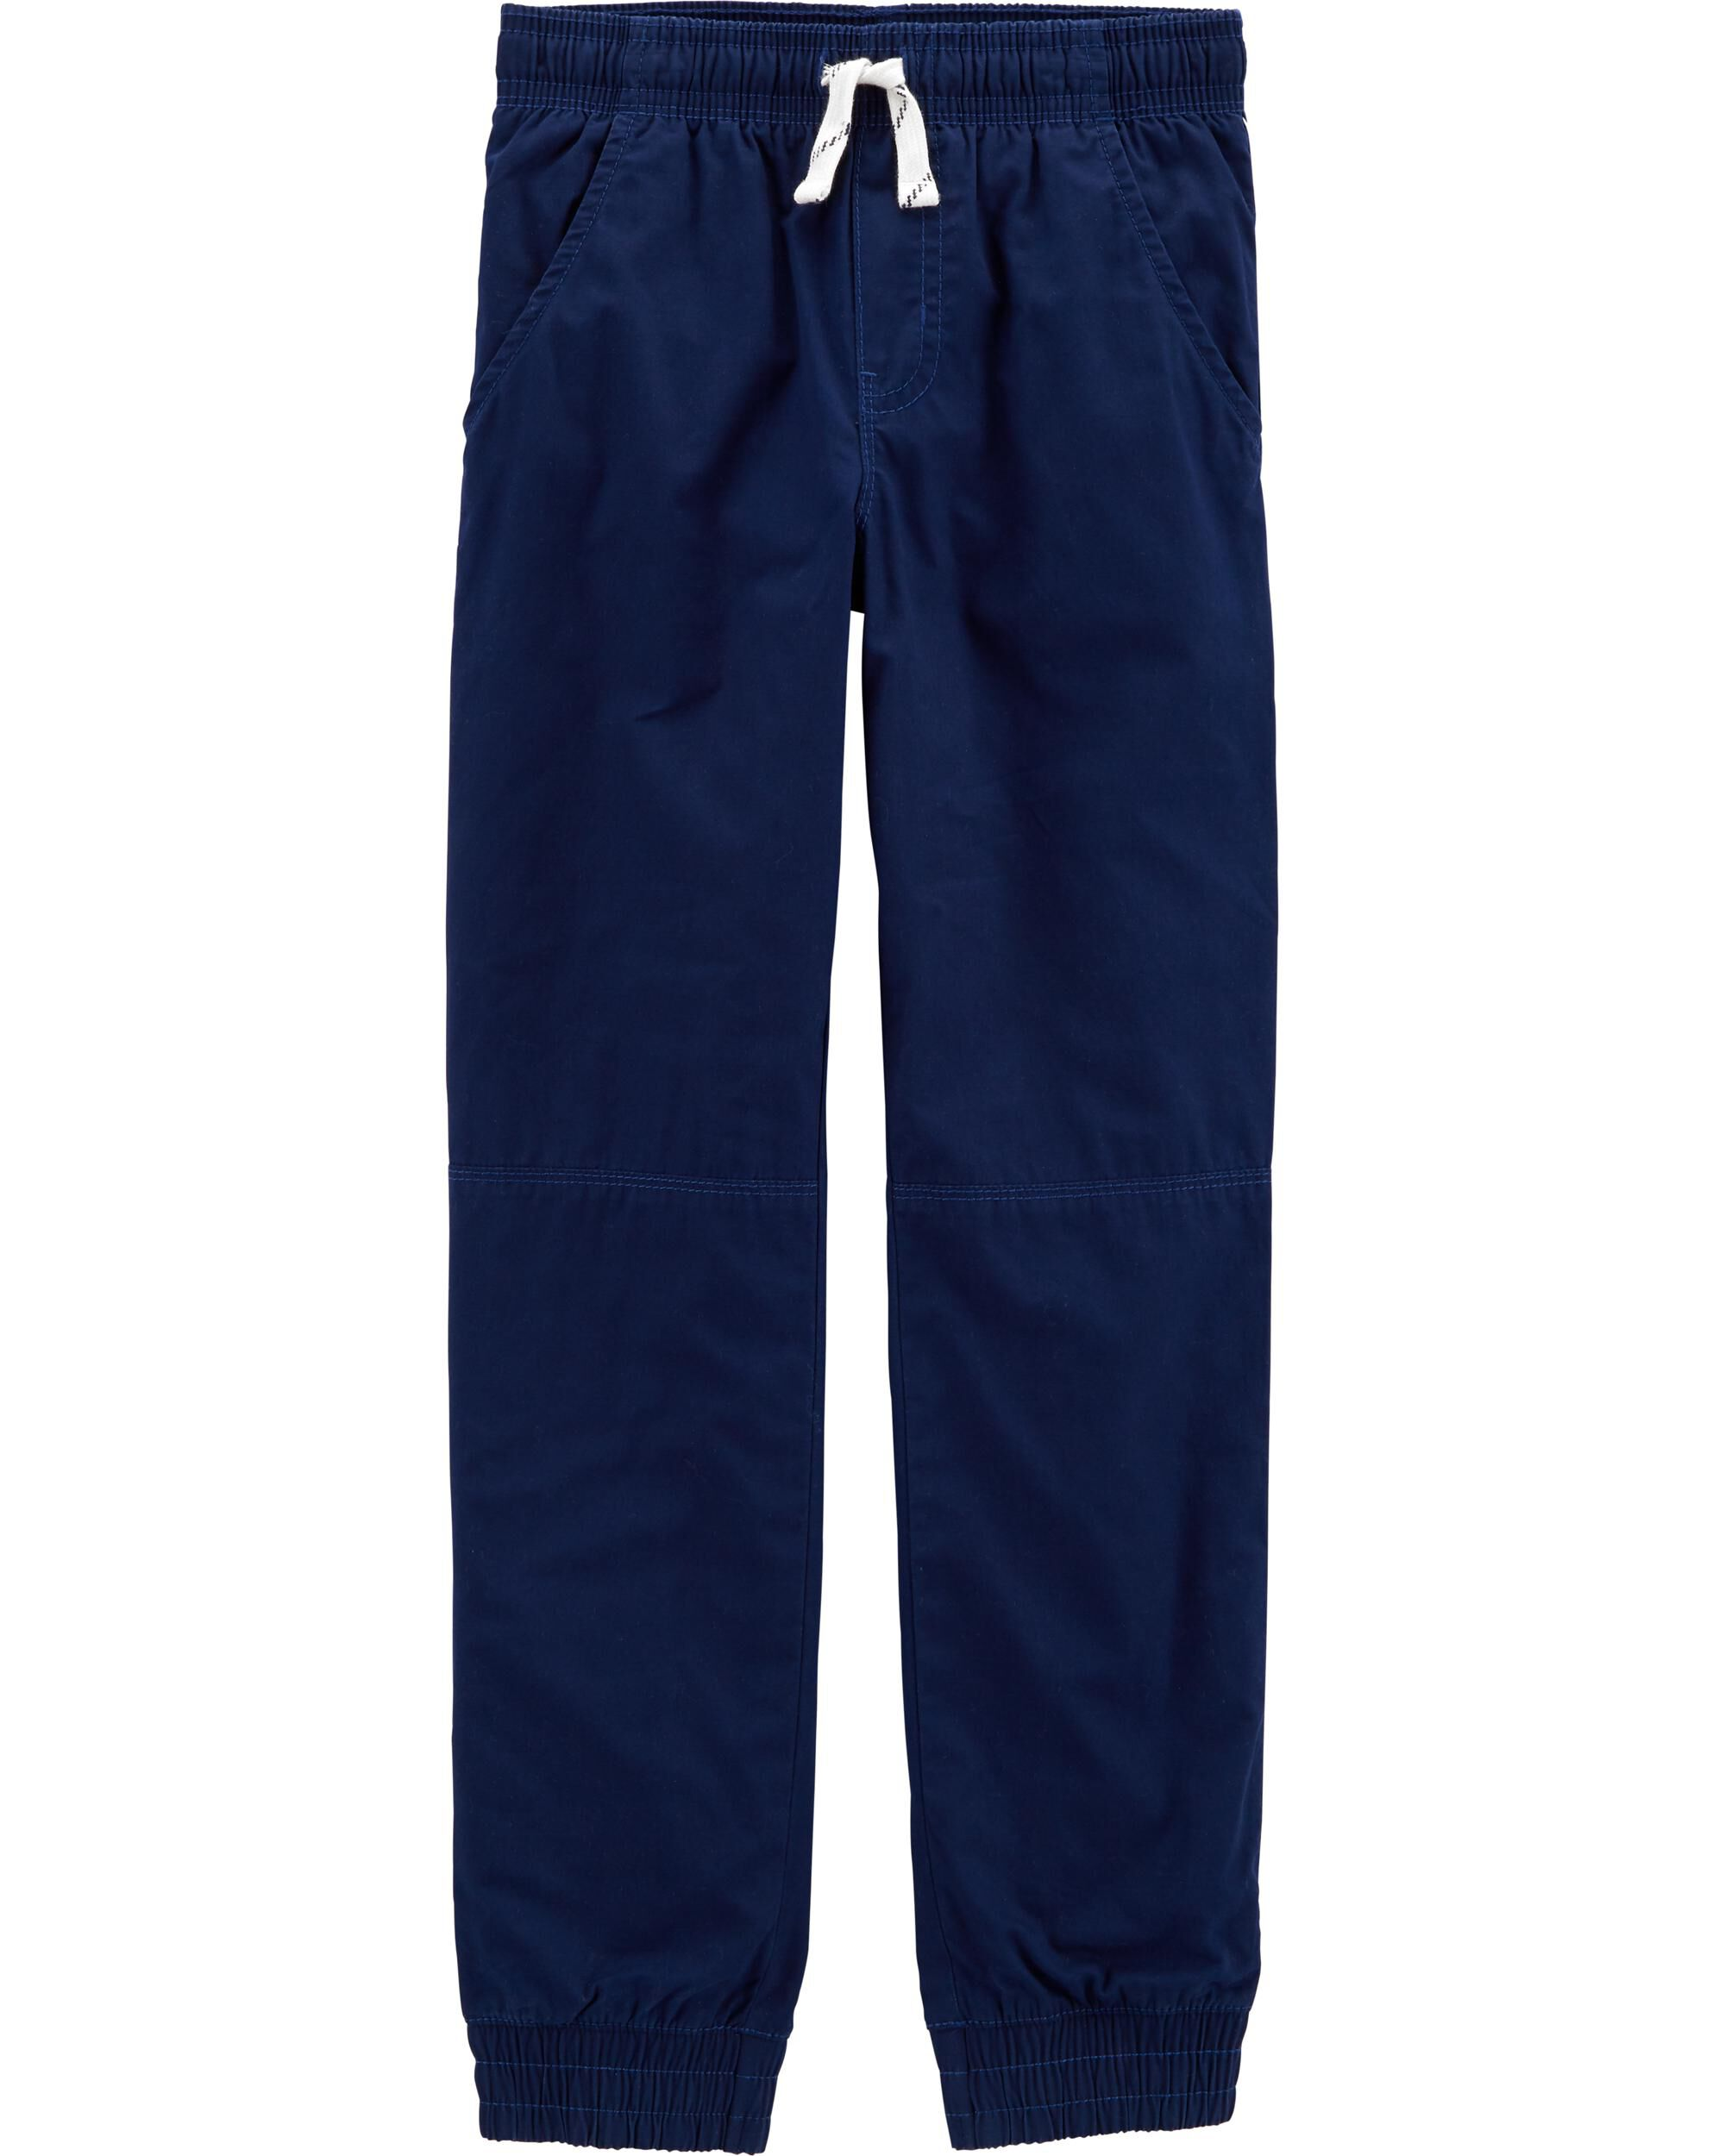 *CLEARANCE* Everyday Pull-On Pants